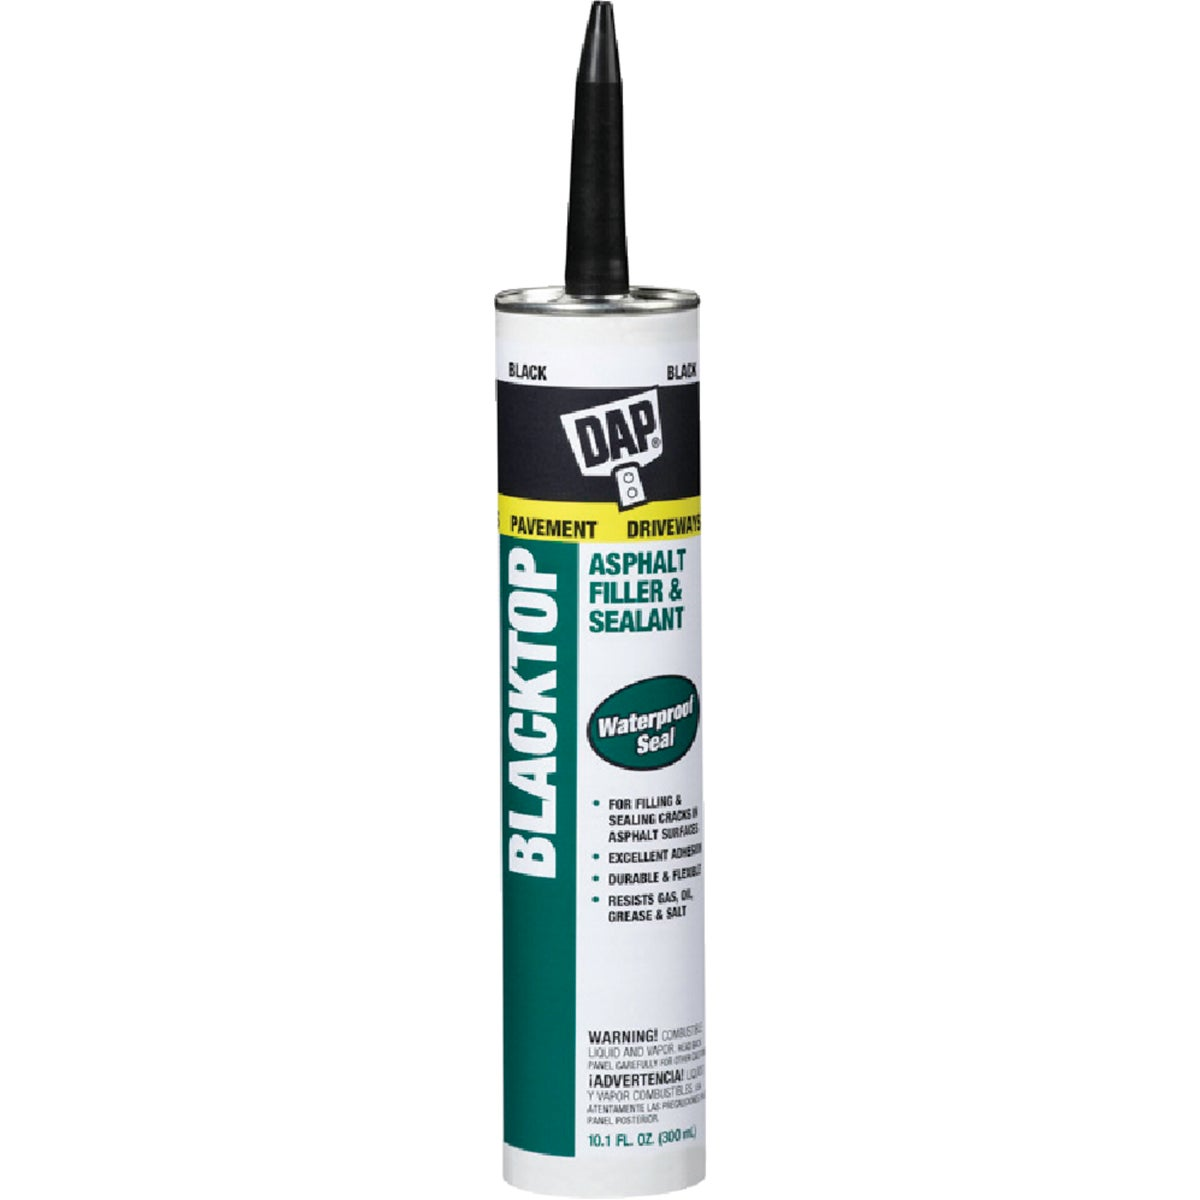 BLACKTOP ASPHALT SEALANT - 18020 by Dap Inc